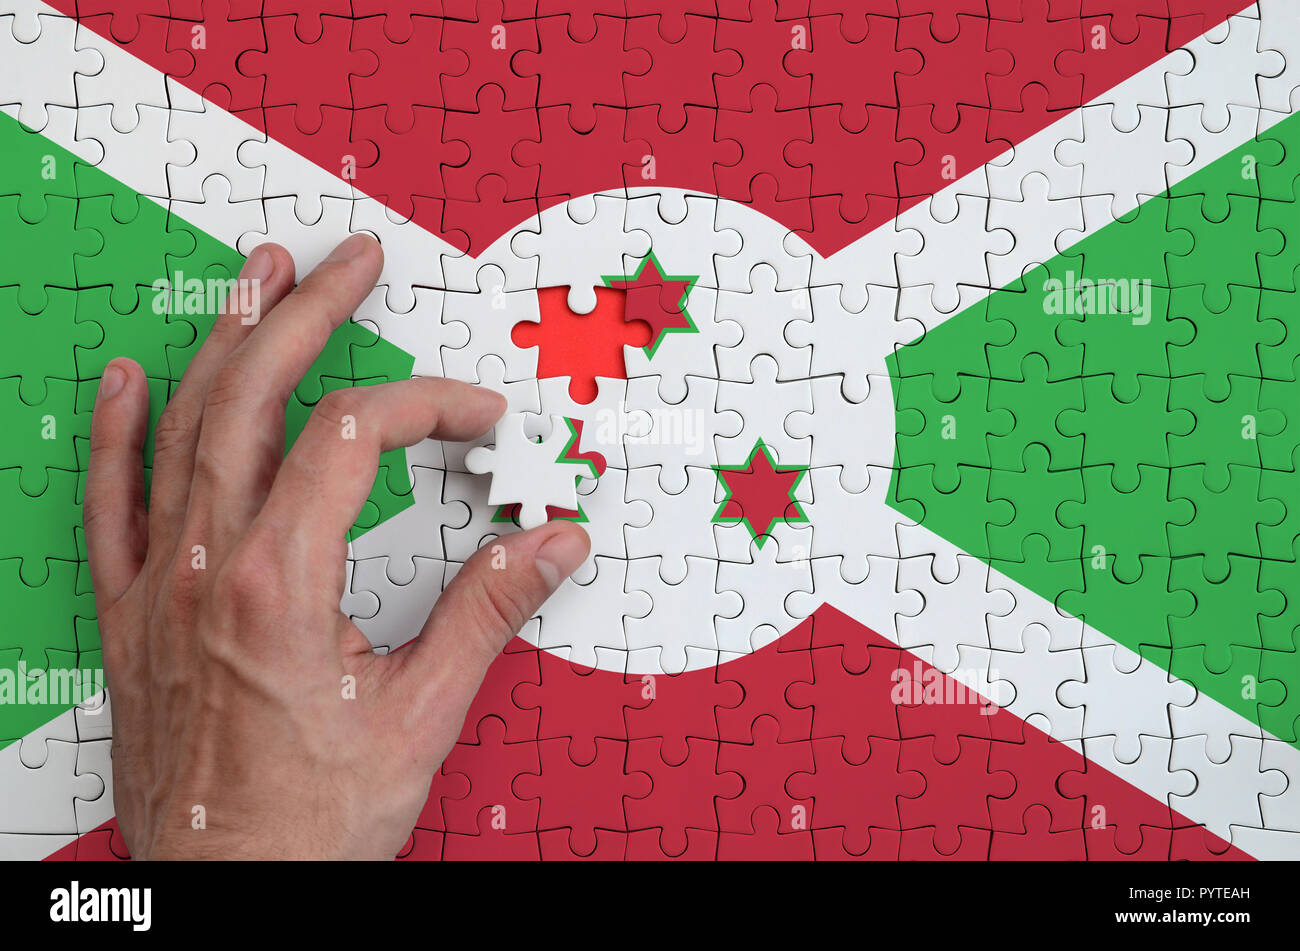 Burundi flag  is depicted on a puzzle, which the man's hand completes to fold. - Stock Image